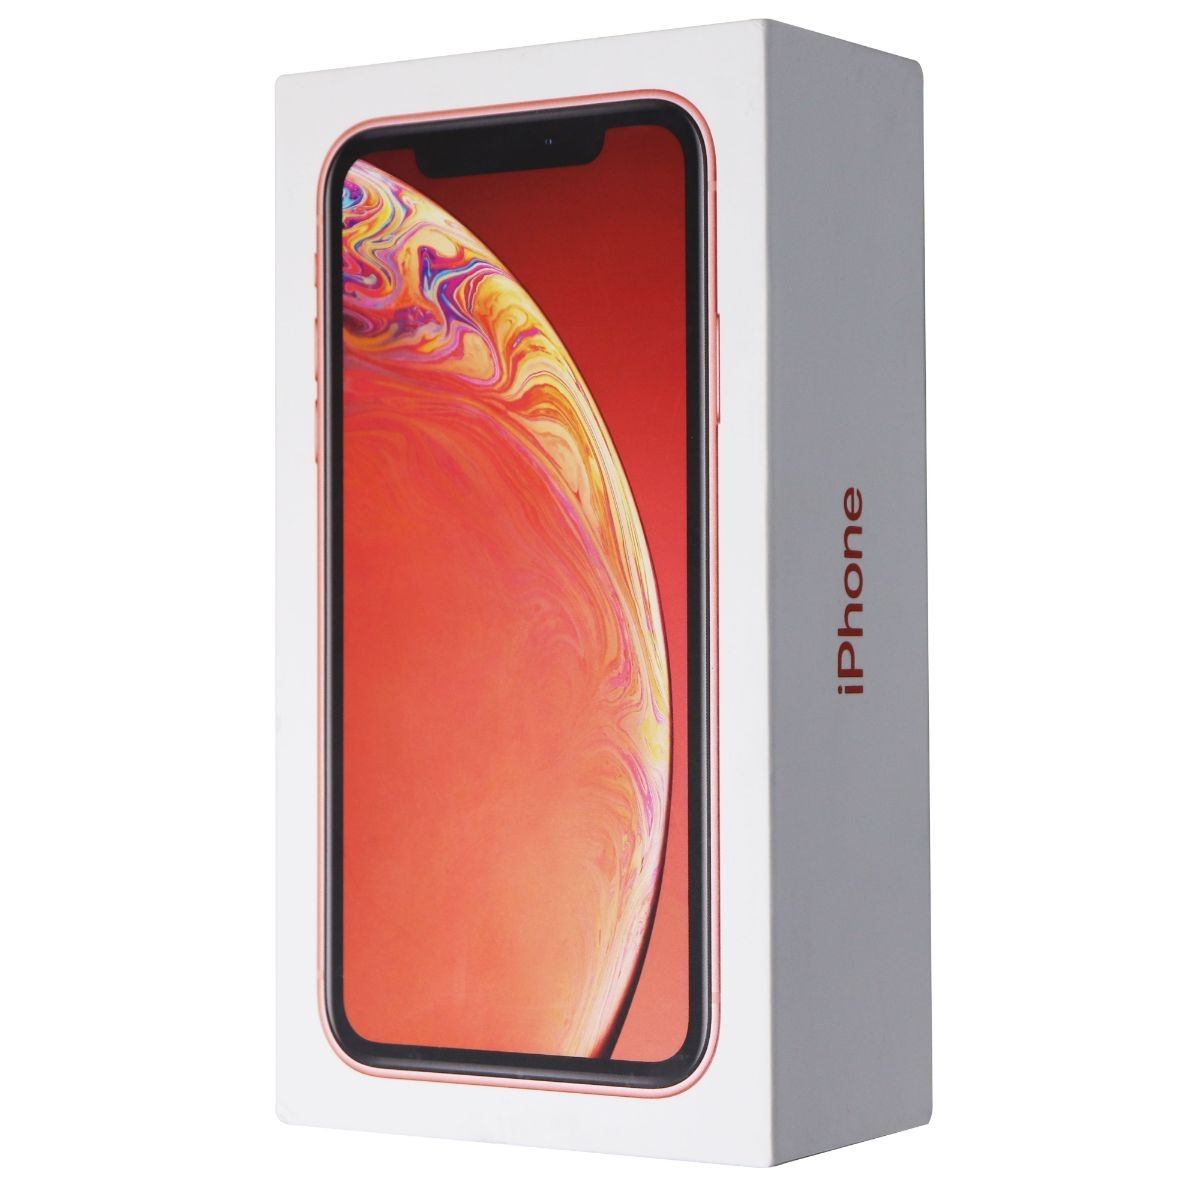 RETAIL BOX - Apple iPhone XR - 256GB / Coral - NO DEVICE